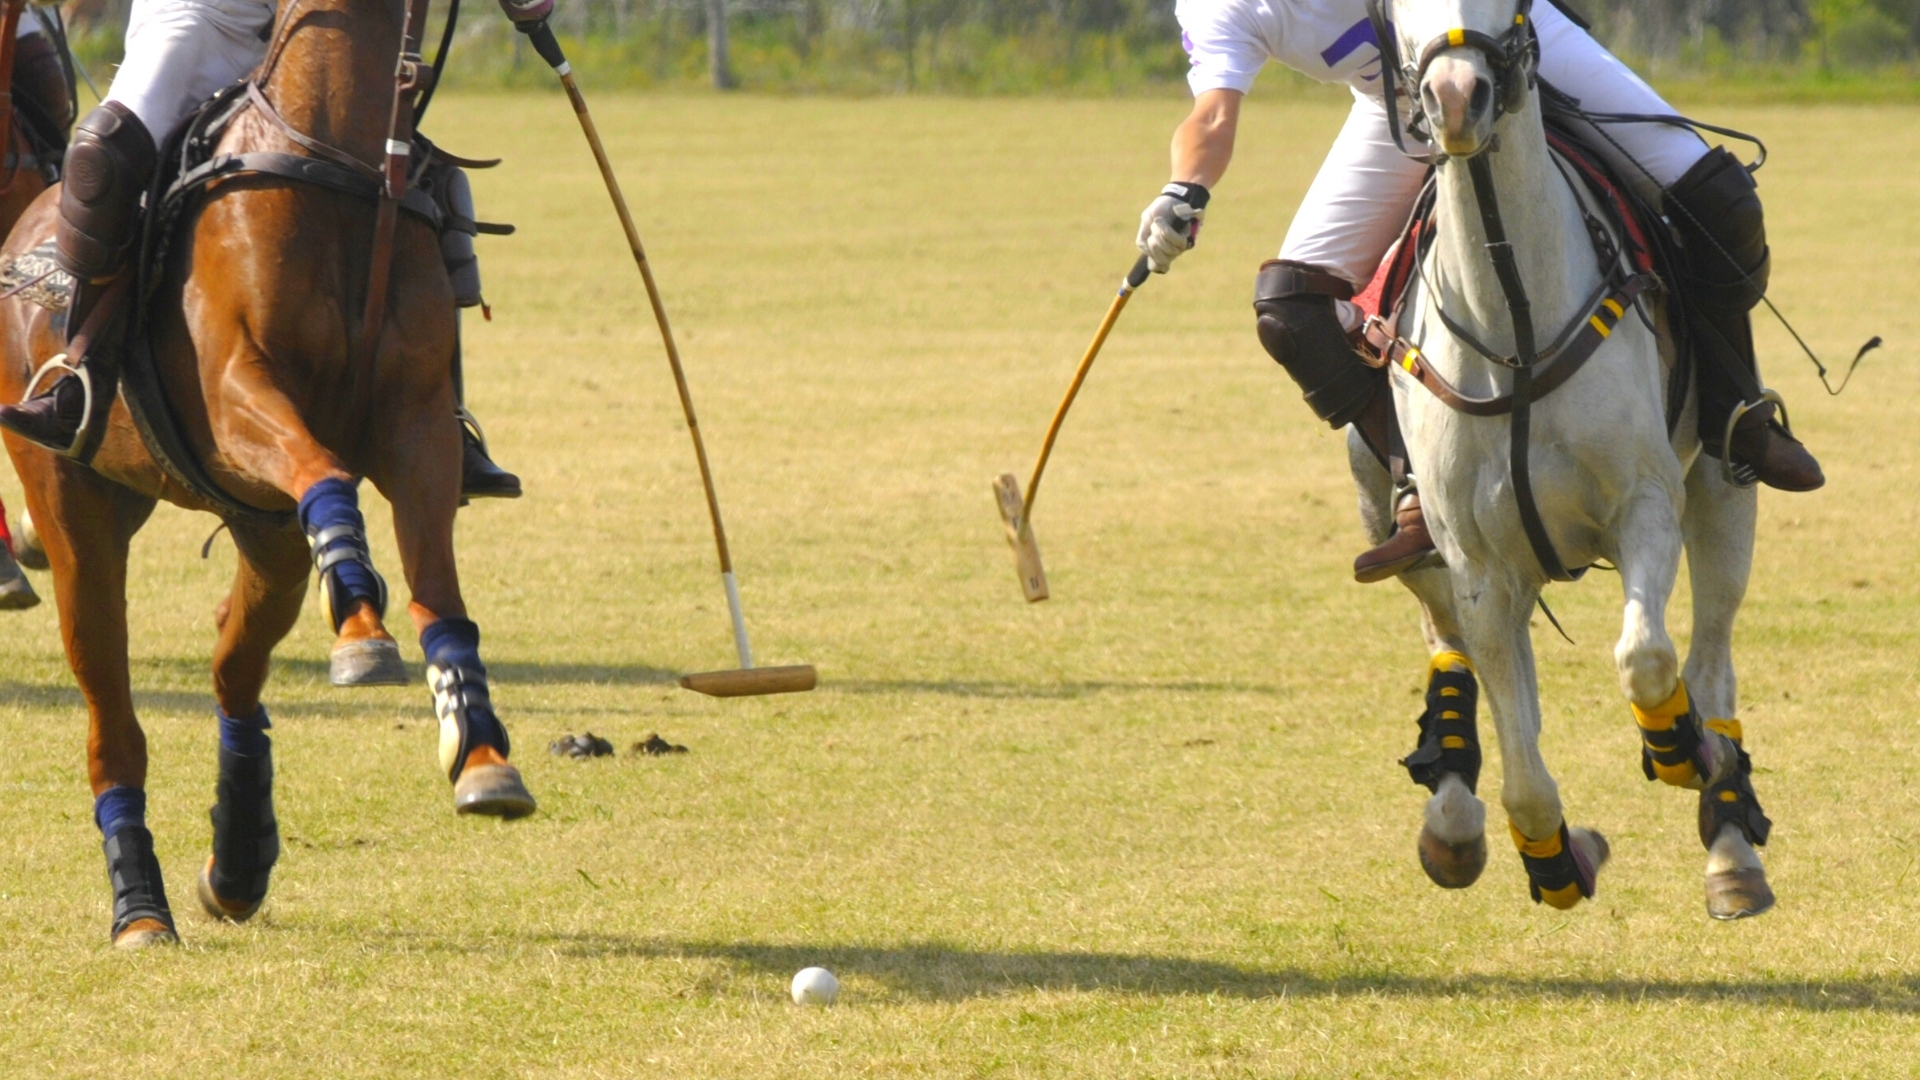 Annual Charleston Victory Cup Polo Match